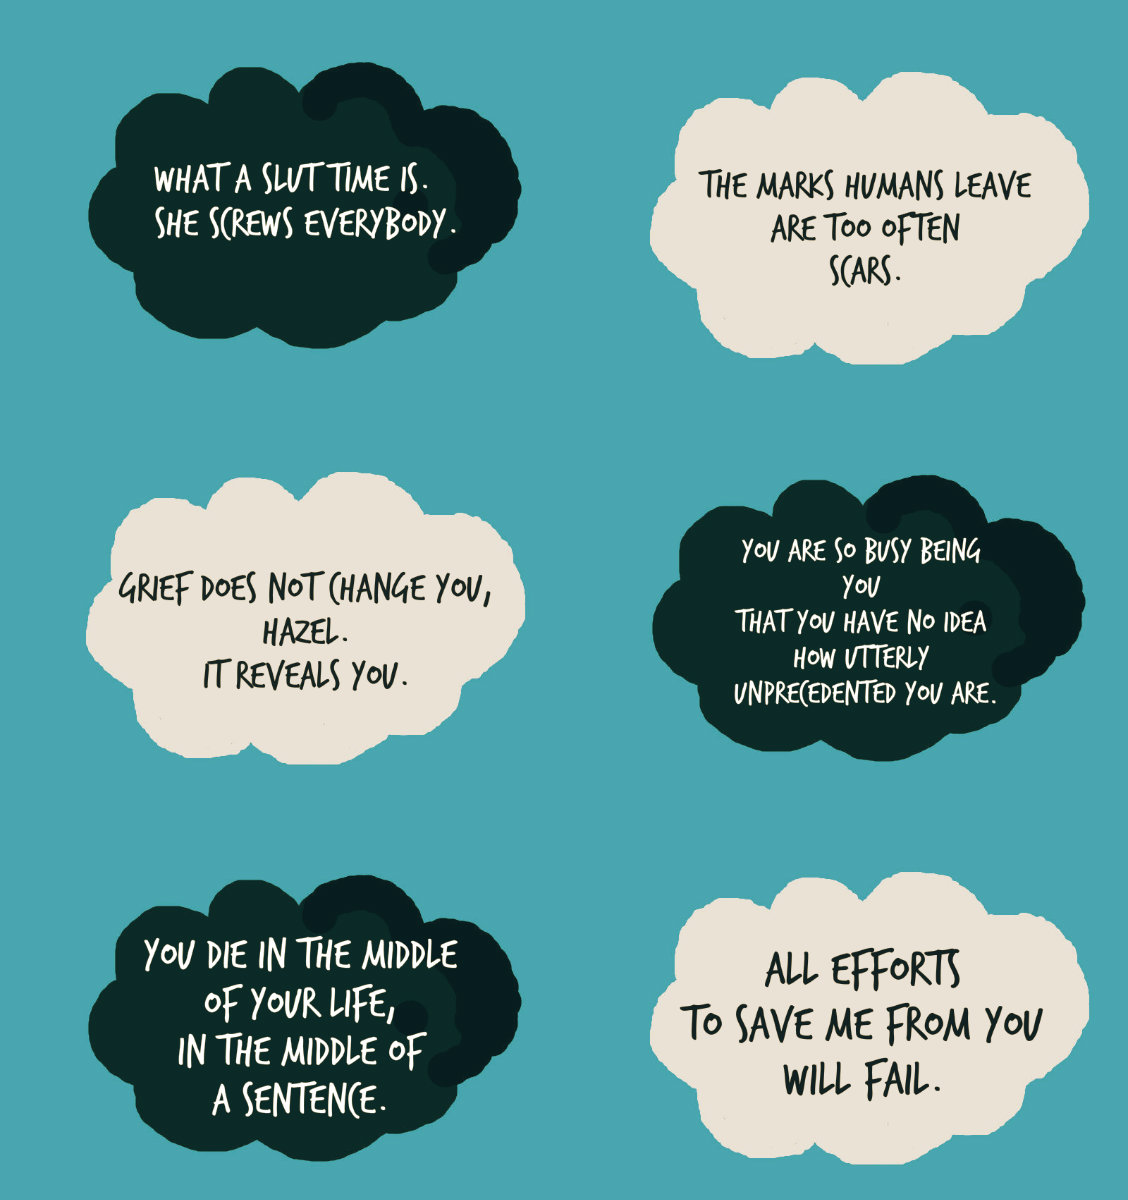 The Fault In Our Stars Quotes The Fault in Our Stars images TFiOS Quotes HD wallpaper and  The Fault In Our Stars Quotes